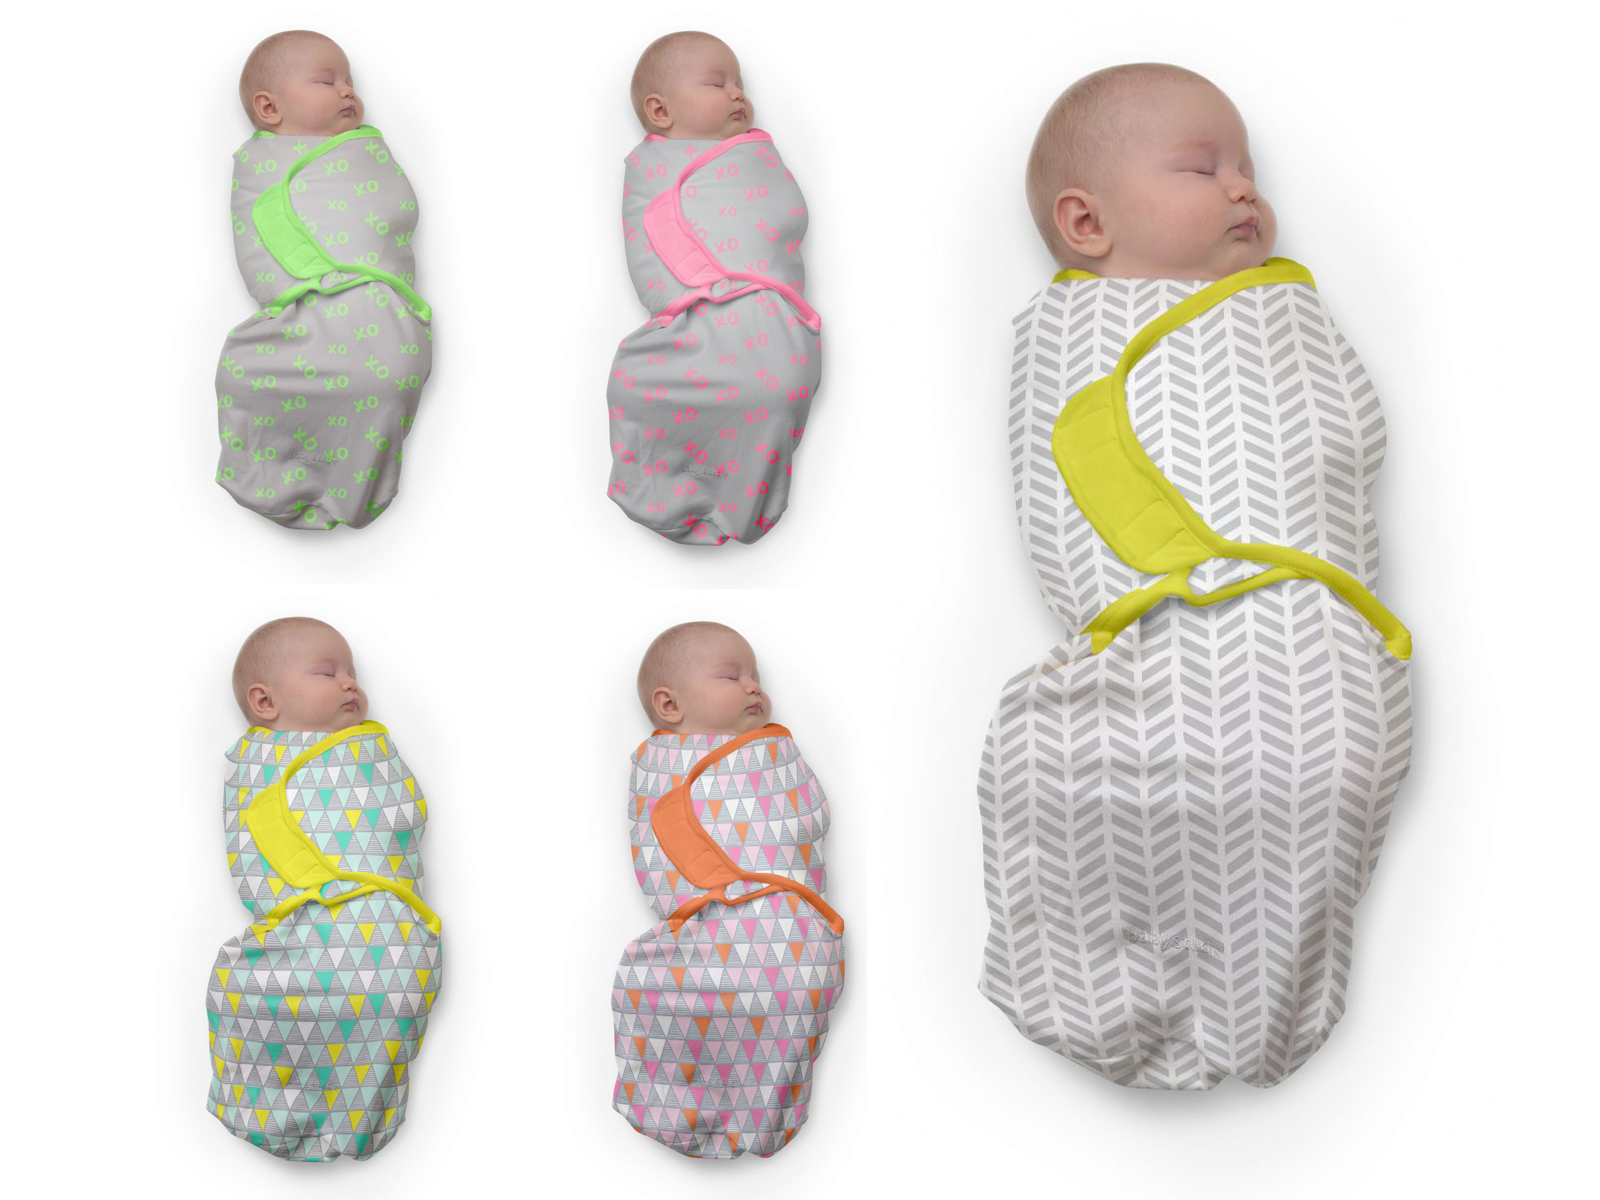 baby studio swaddle wrap instructions